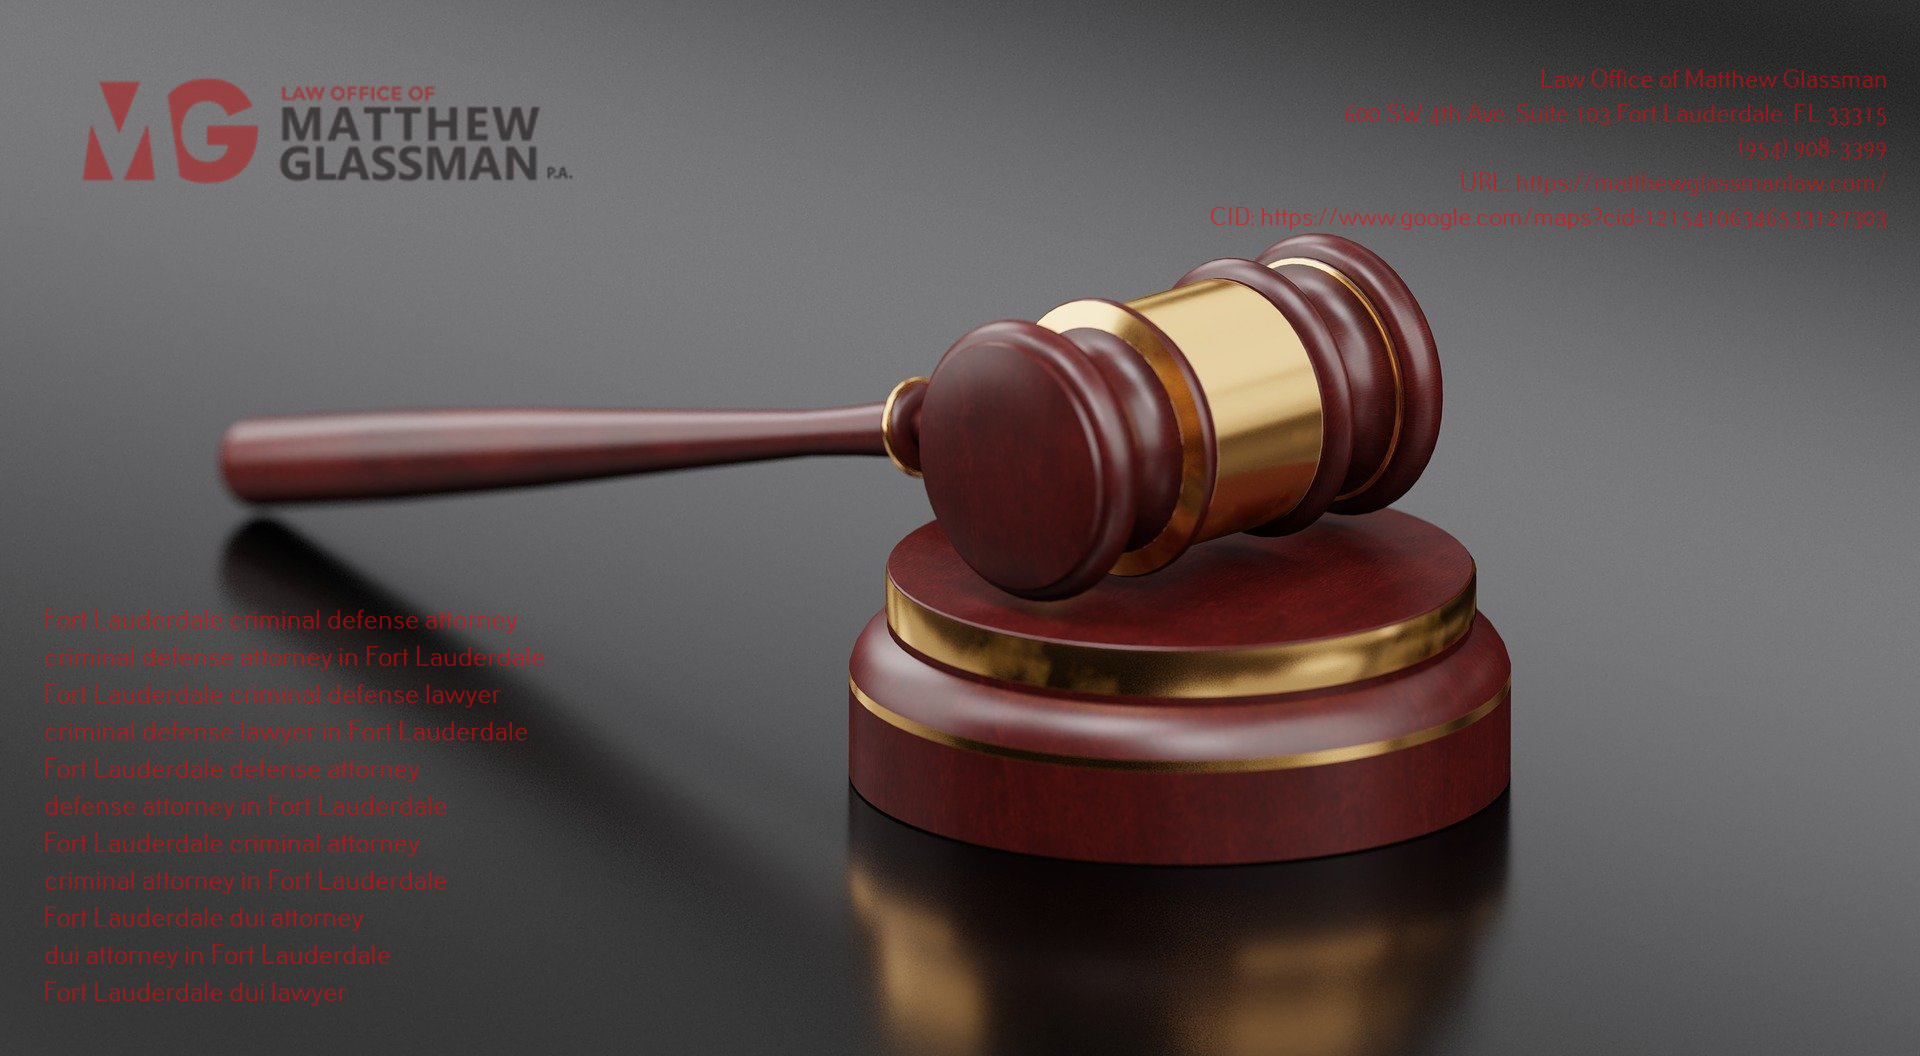 Law Office of Matthew Glassman Expounds on the Qualities of a Good Criminal Defense Attorney